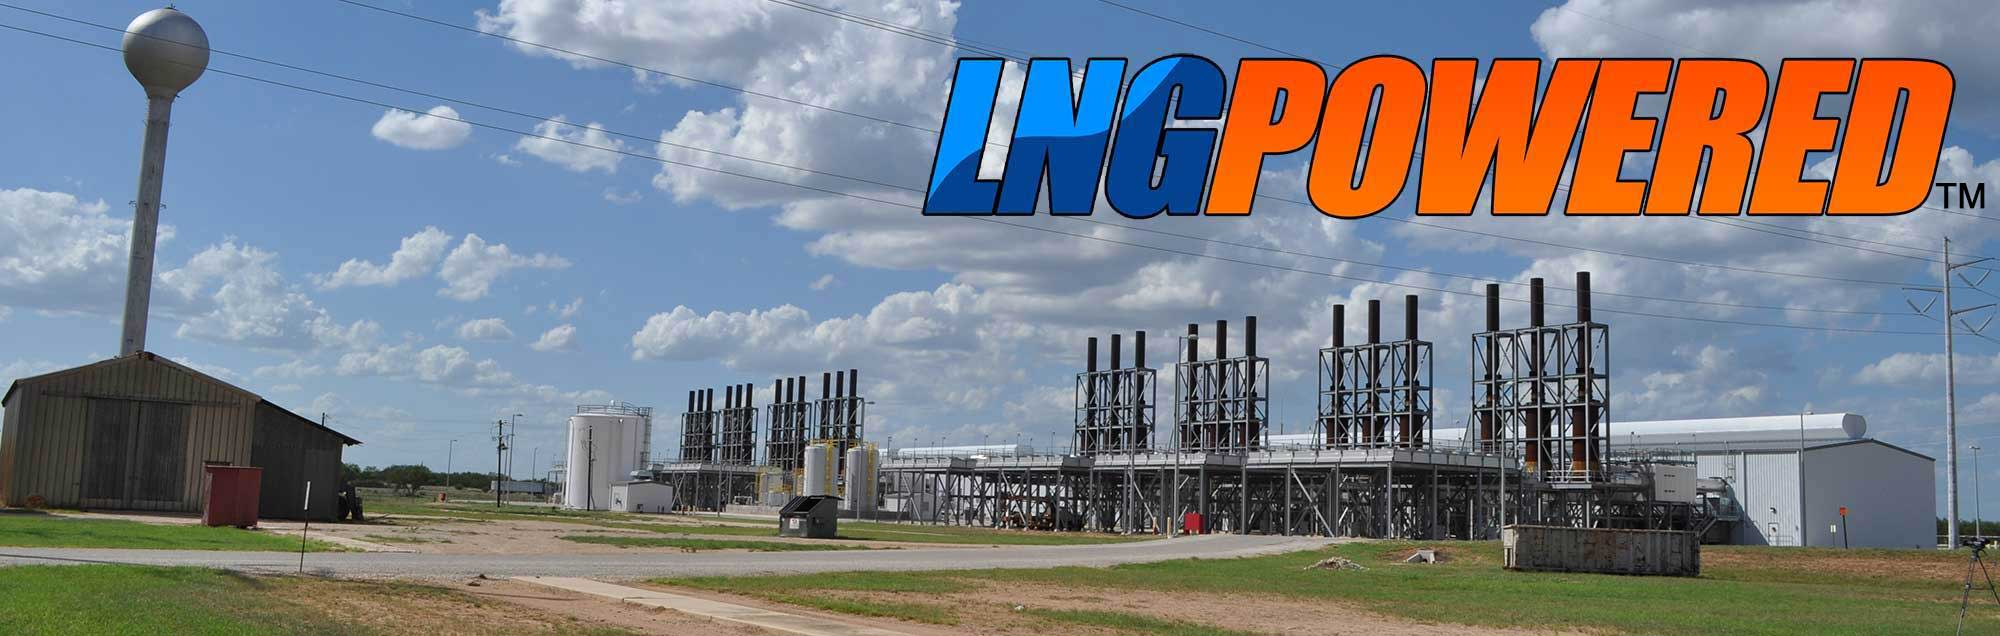 LNG Powered Power Generation Engines